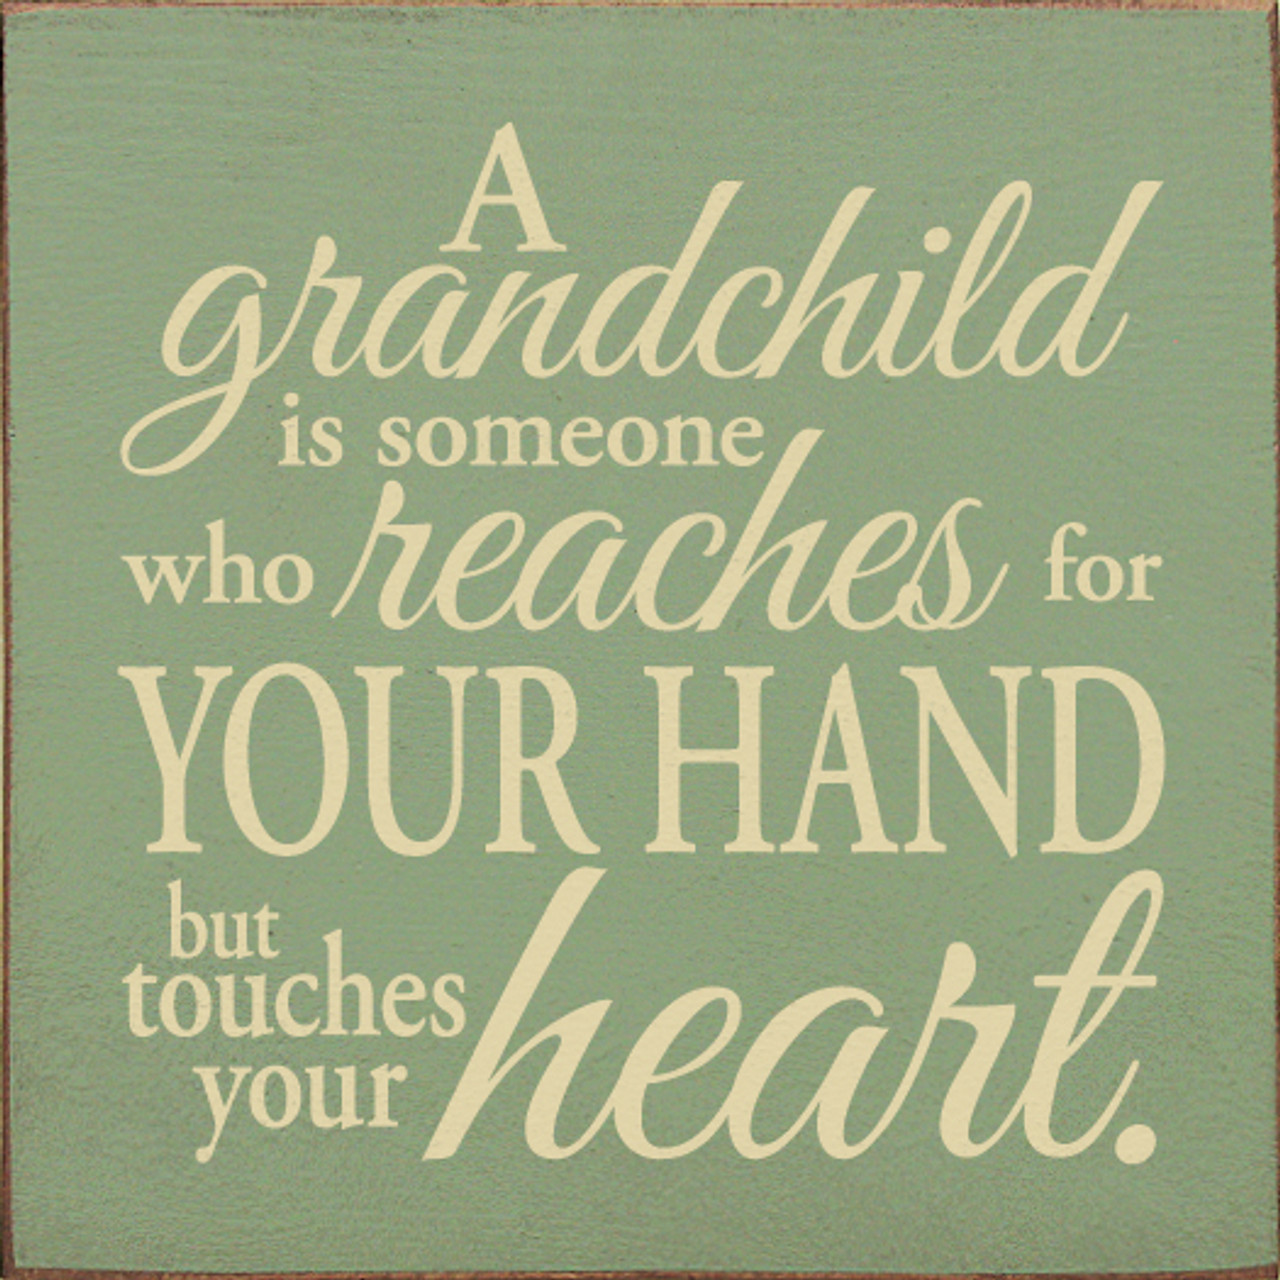 A grandchild is someone who reachest for your hand but